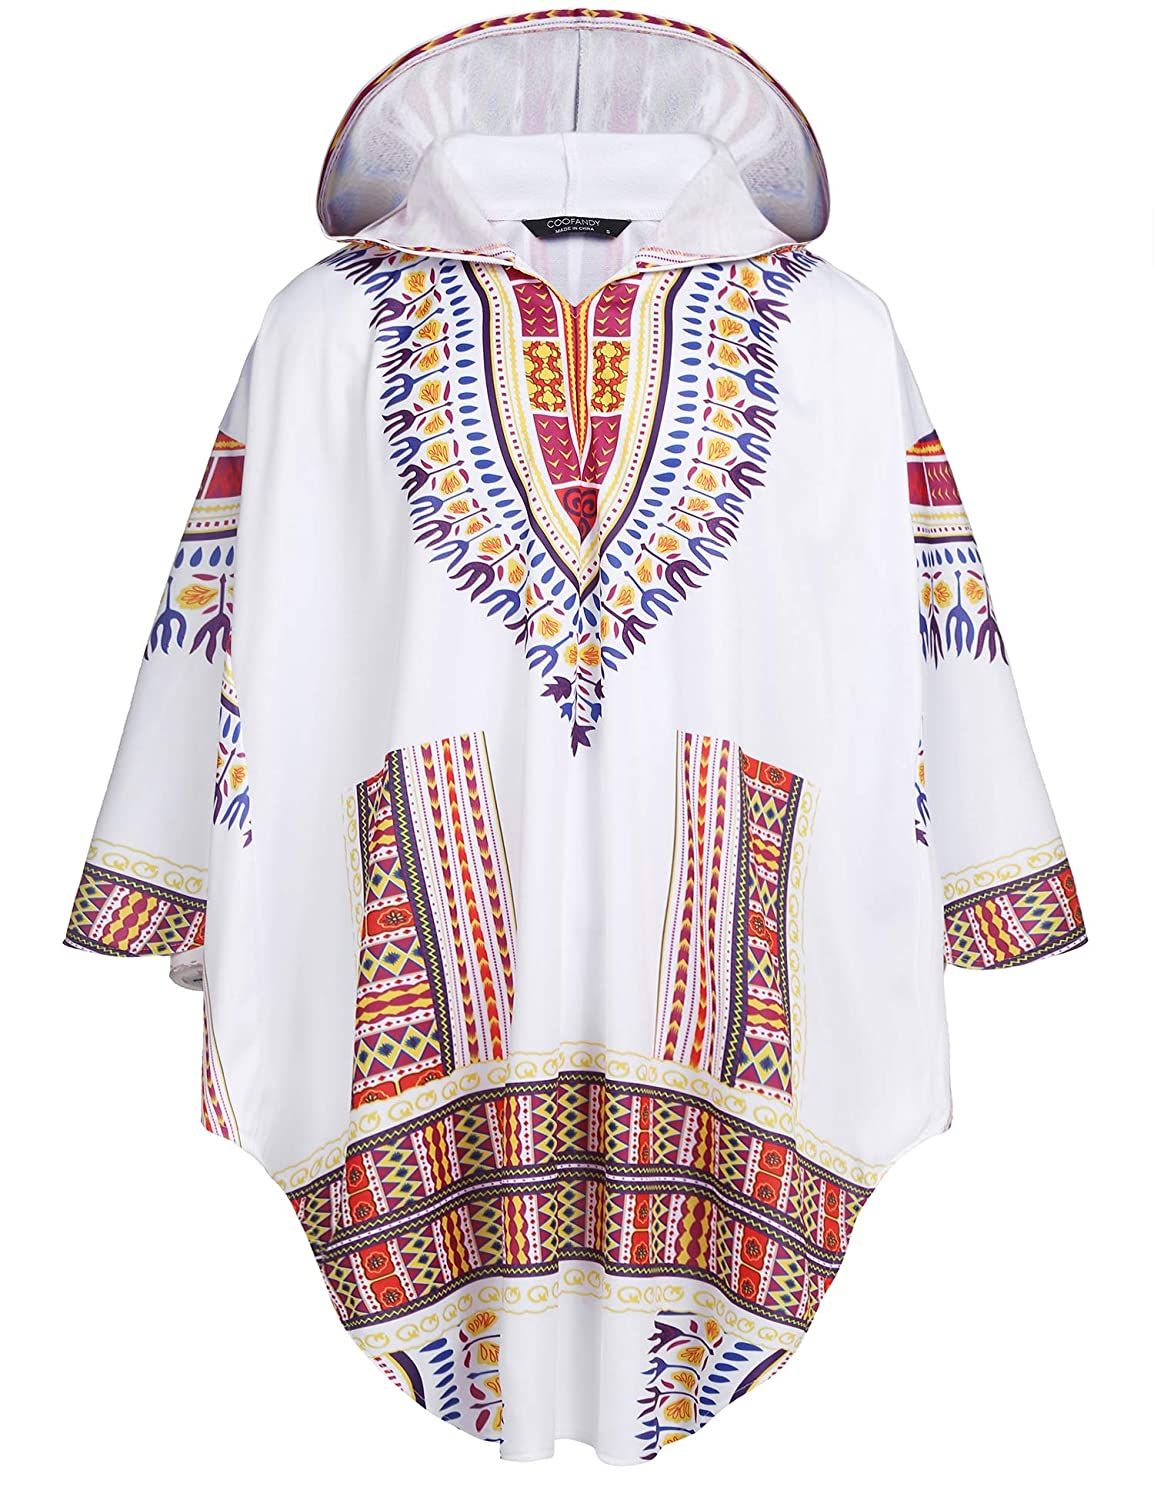 COOFANDY Men's Poncho Cape Hoodie African Print Dashiki Fashion Irregular Coat Pullover Cloak 919005577